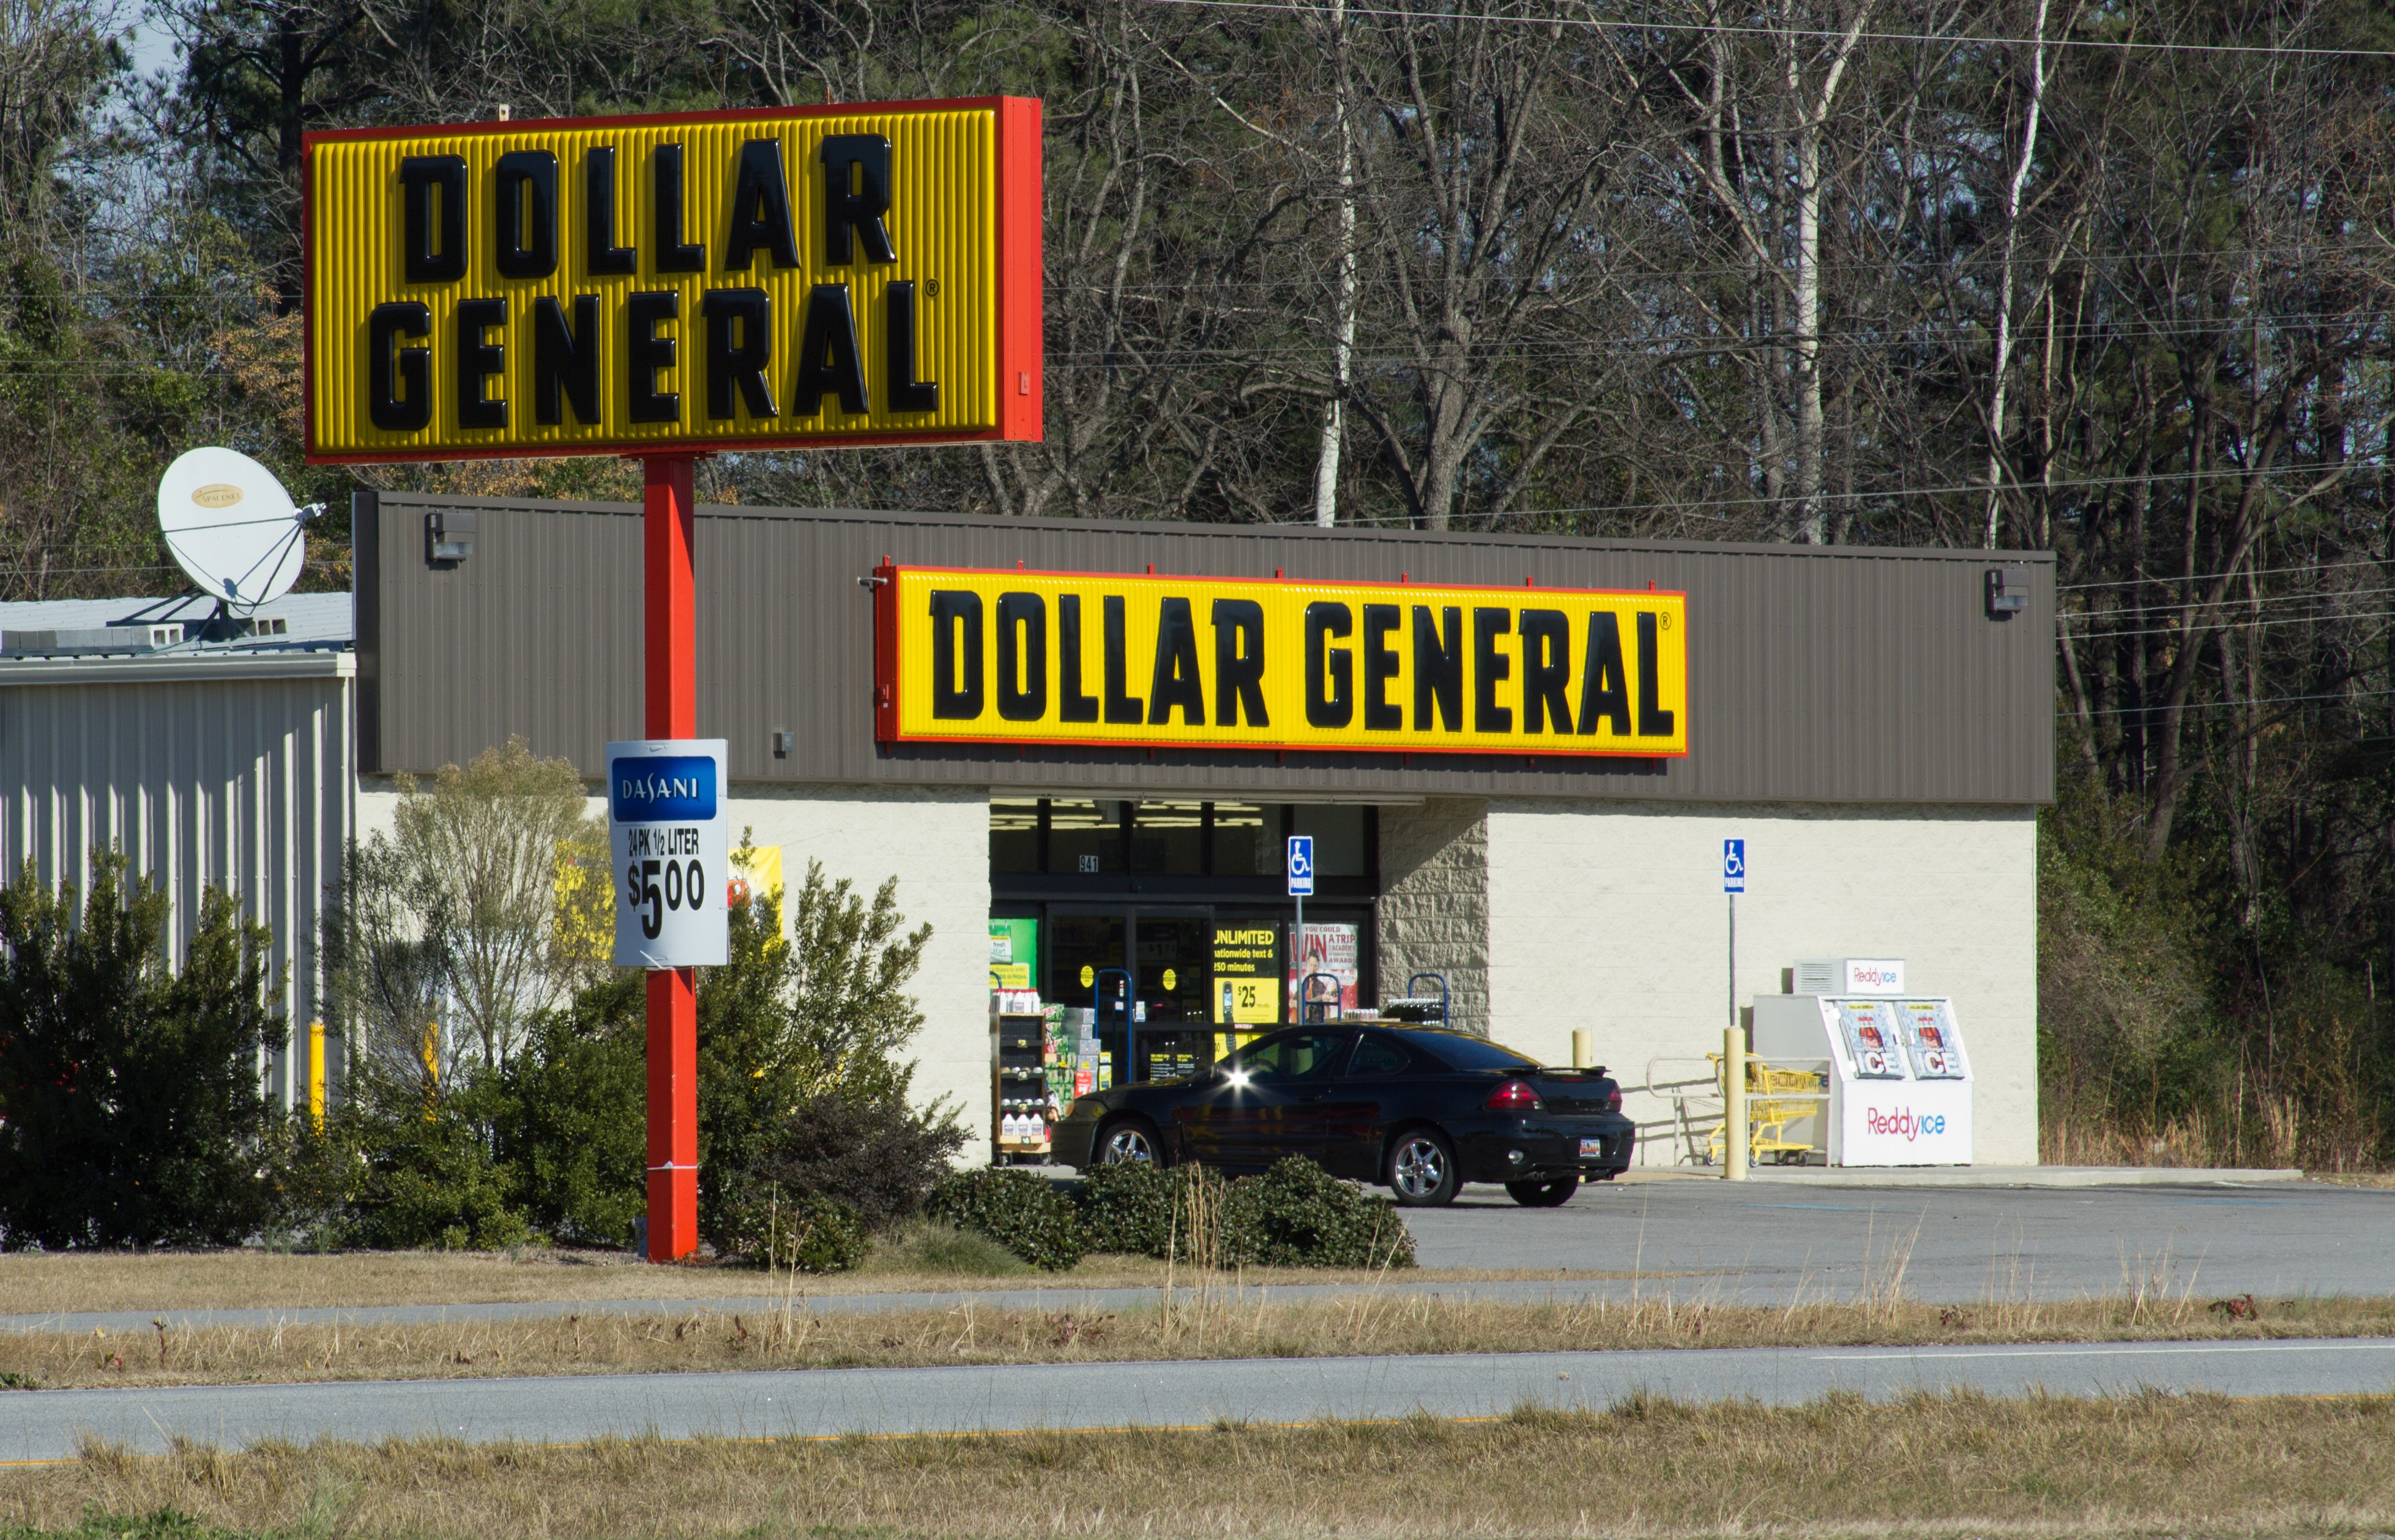 Dollar General in Tulsa, Oklahoma: complete list of store locations, hours, holiday hours, phone numbers, and services. Find Dollar General location near you. Dollar General Locations & Hours in Tulsa, Oklahoma.